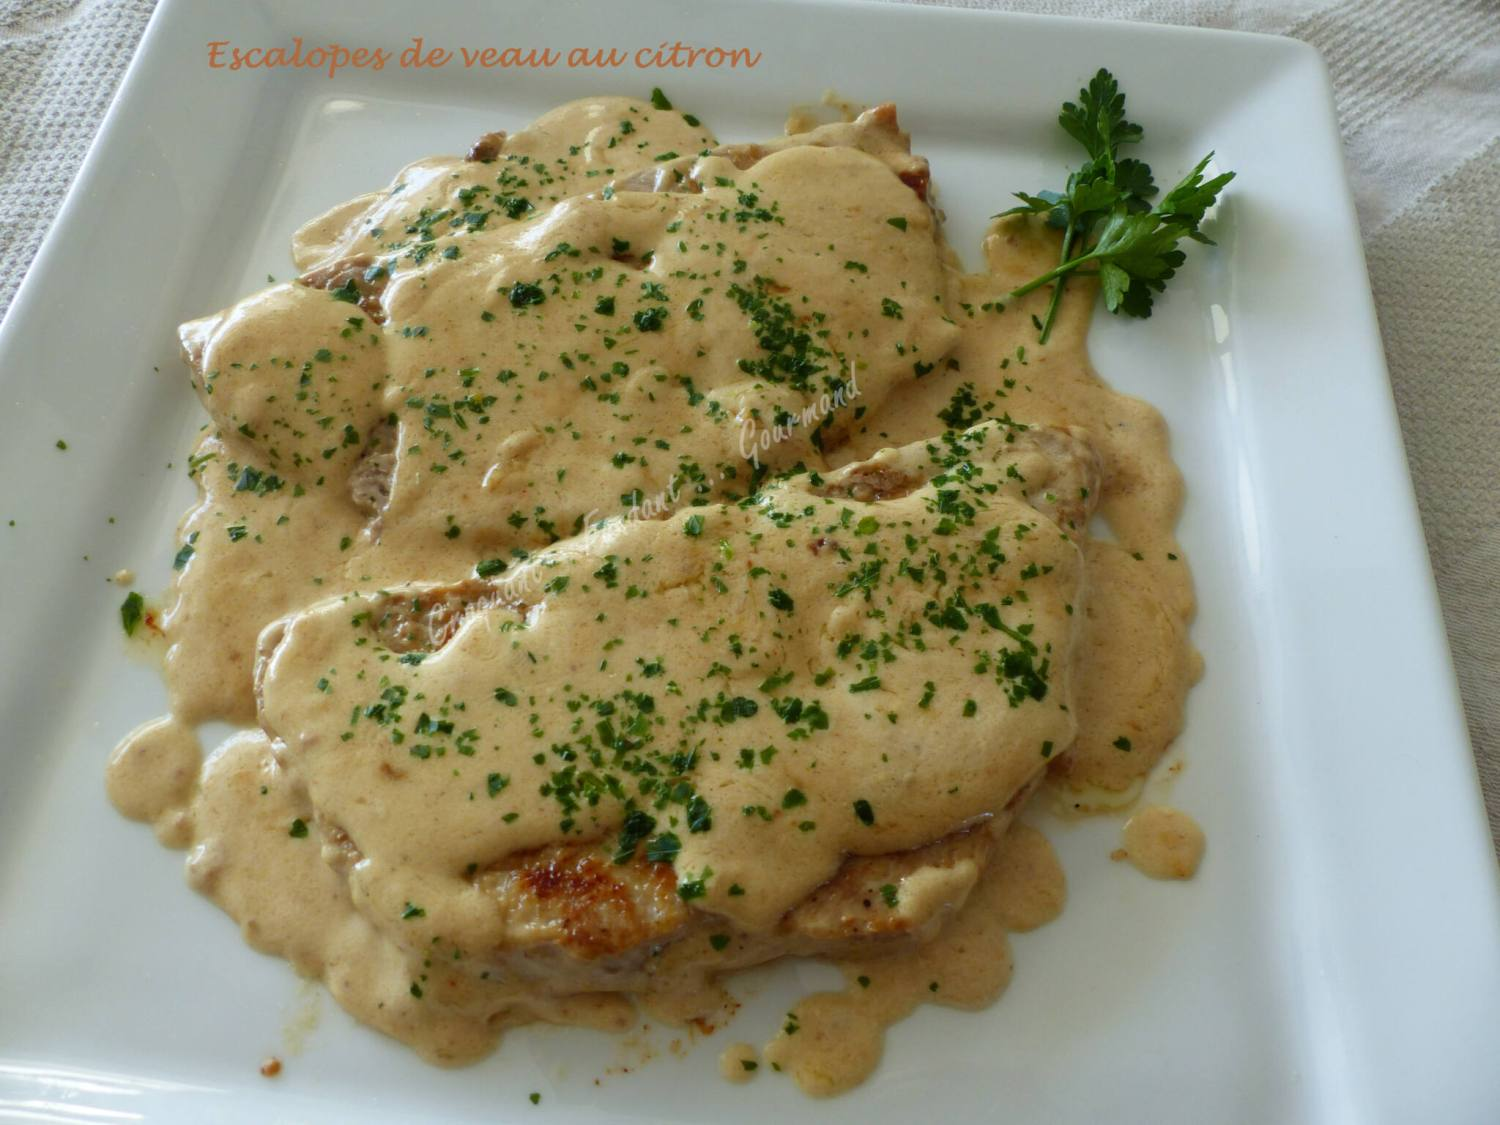 Escalopes de veau au citron P1010812